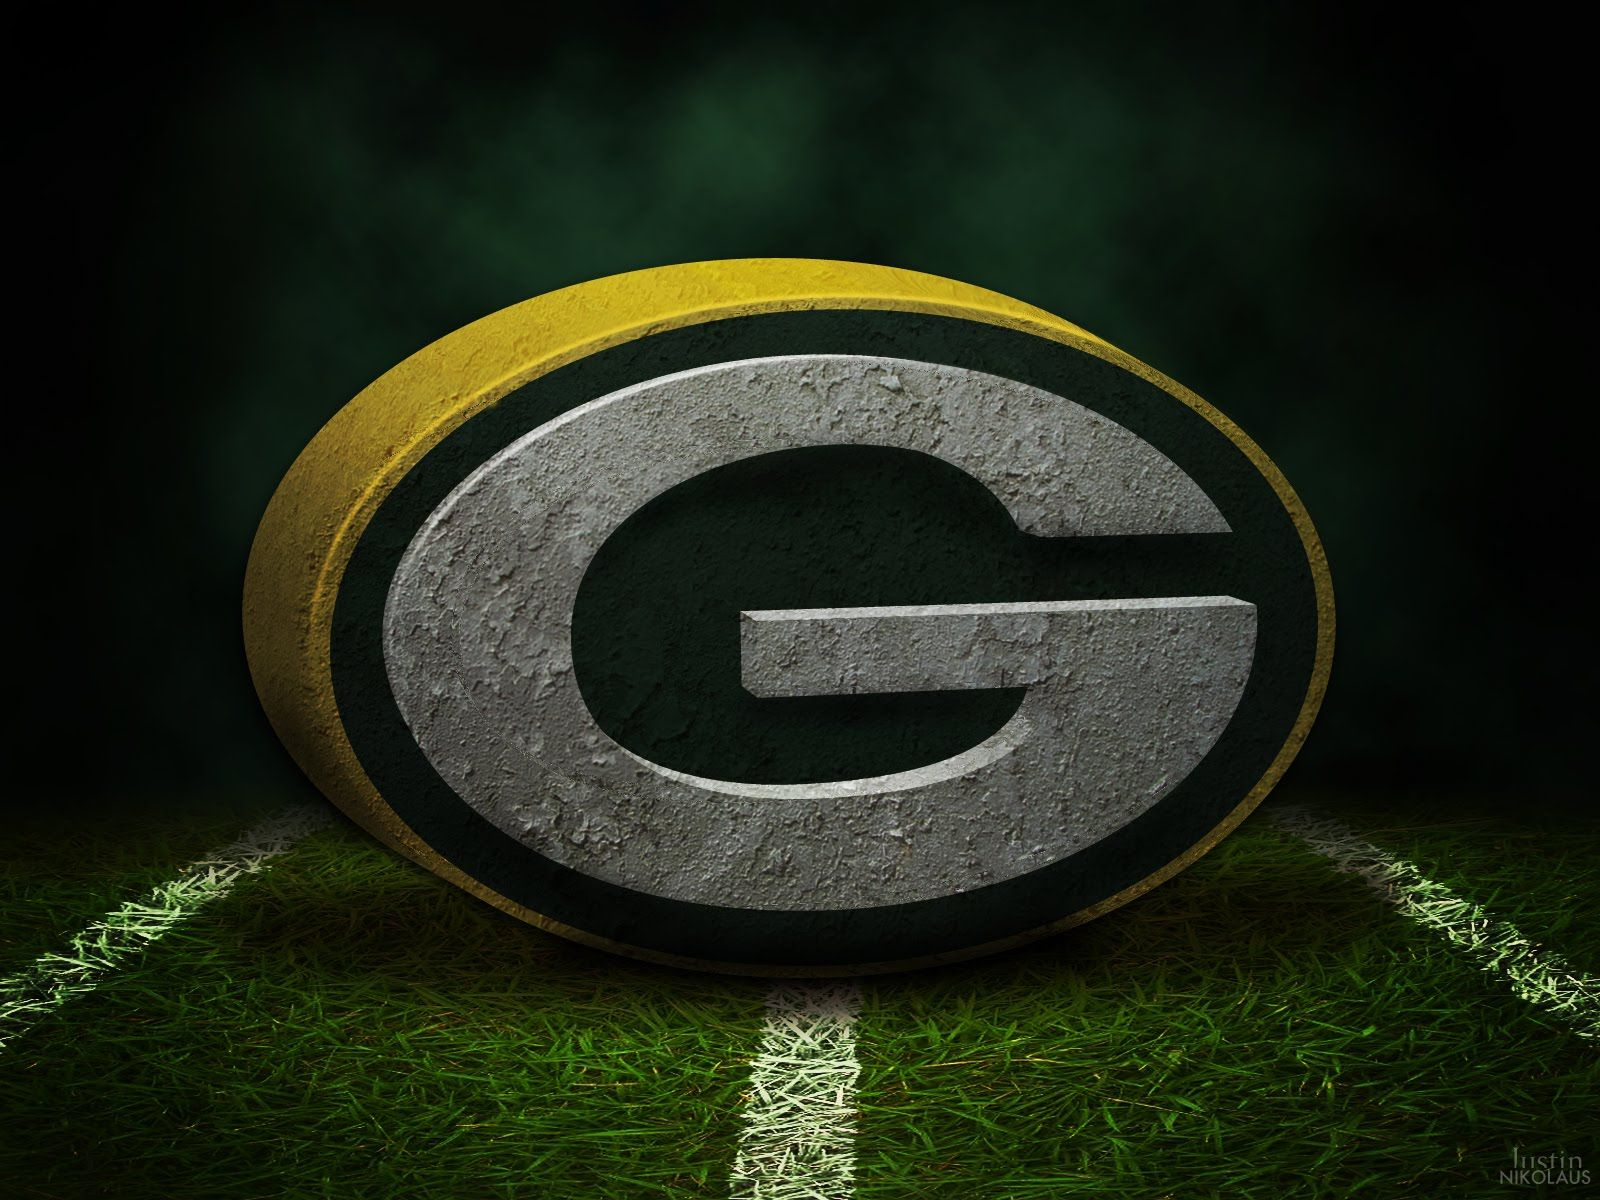 3d Green Bay Packers Wallpaper Best Wallpaper Hd Green Bay Packers Wallpaper Green Bay Packers Logo Green Bay Packers